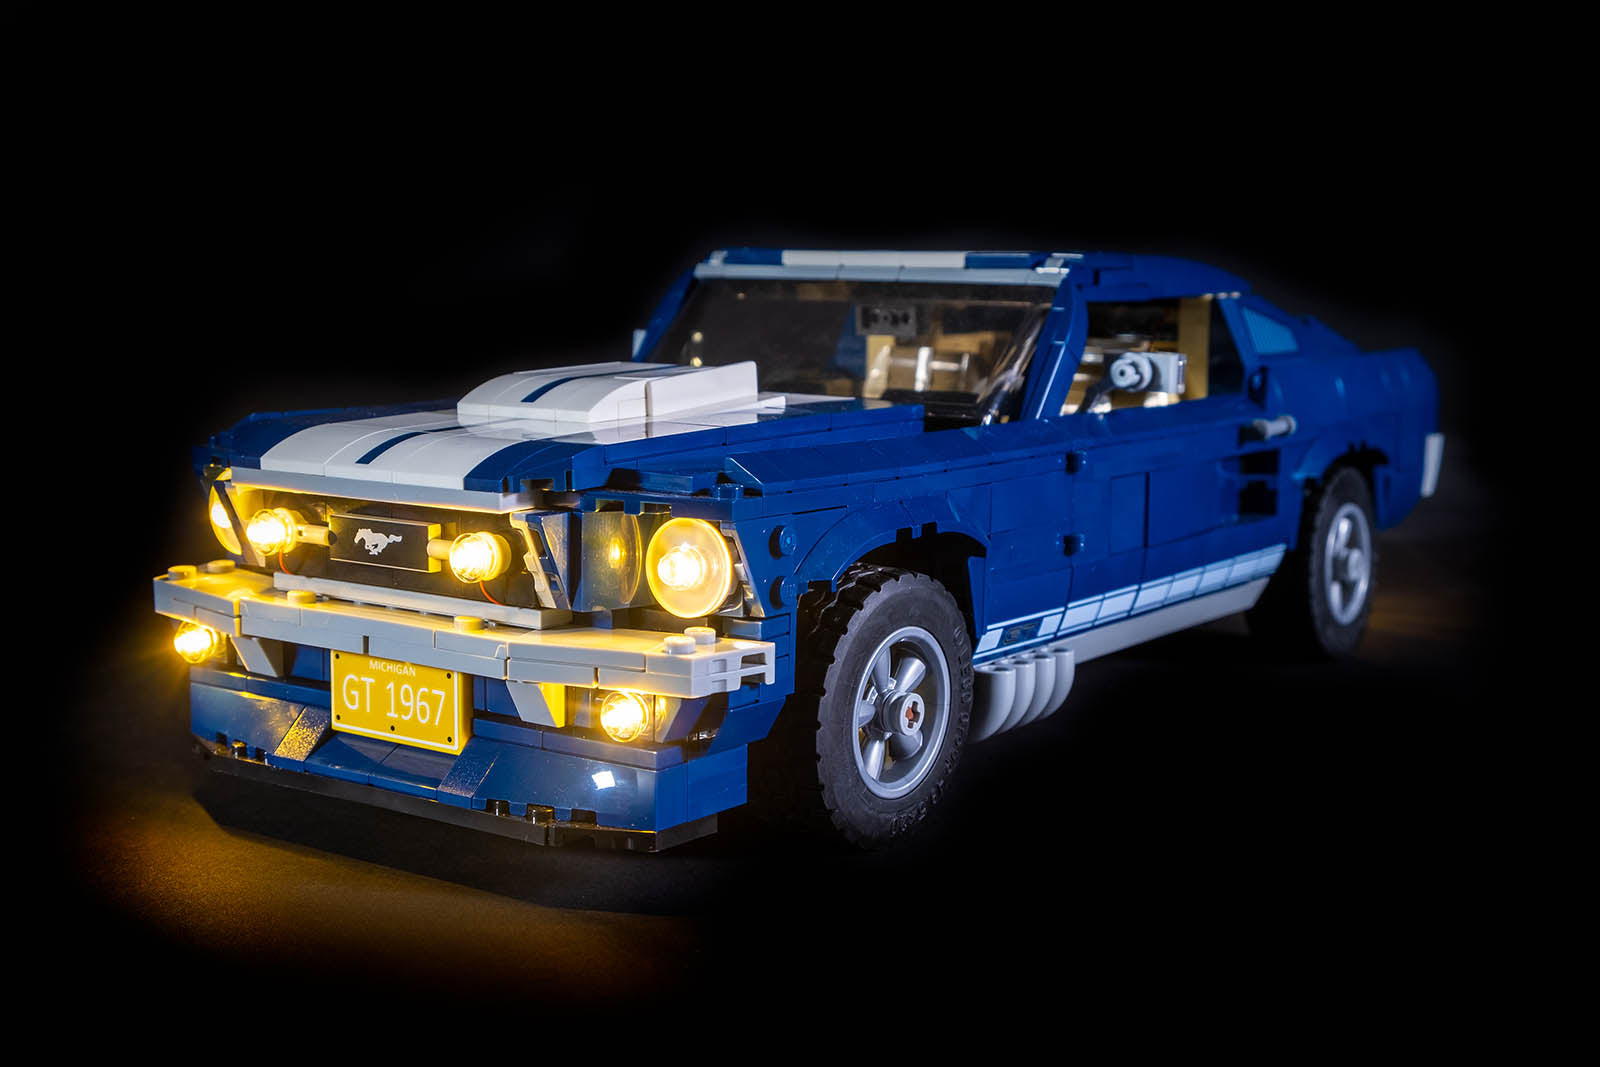 LEGO Ford Mustang GT 10265 Review & Lighting Journal